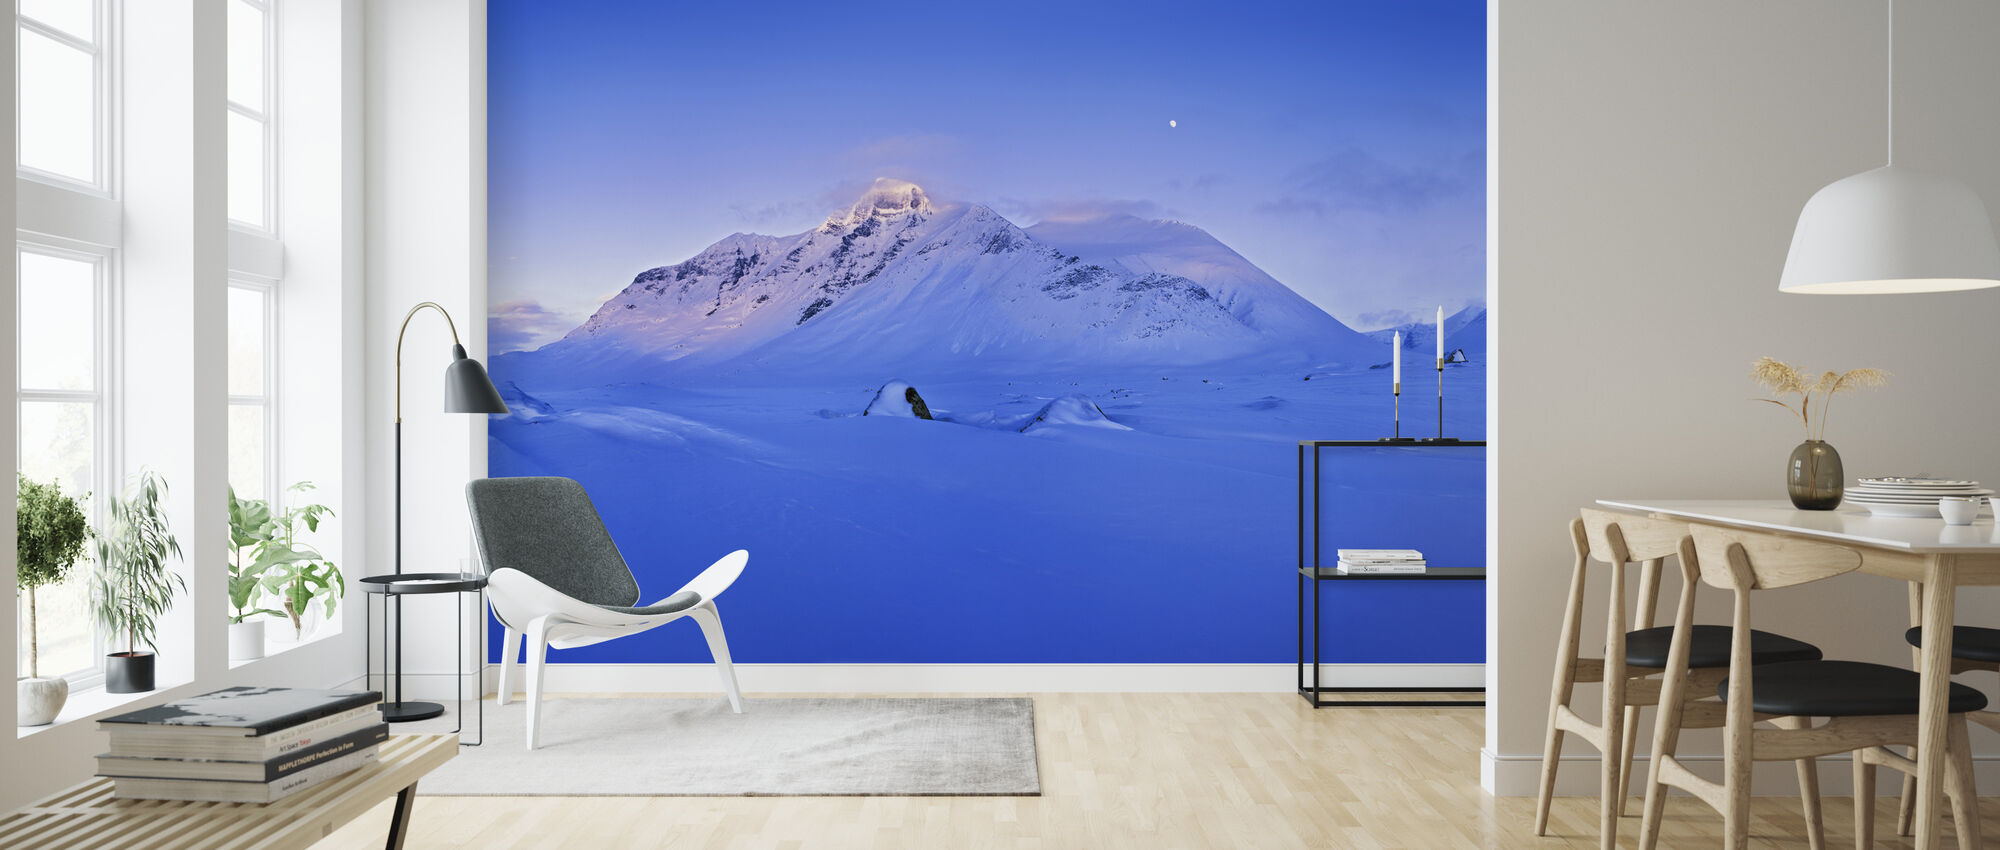 Blue Evening in Sarek, Sweden, Europe - Wallpaper - Living Room